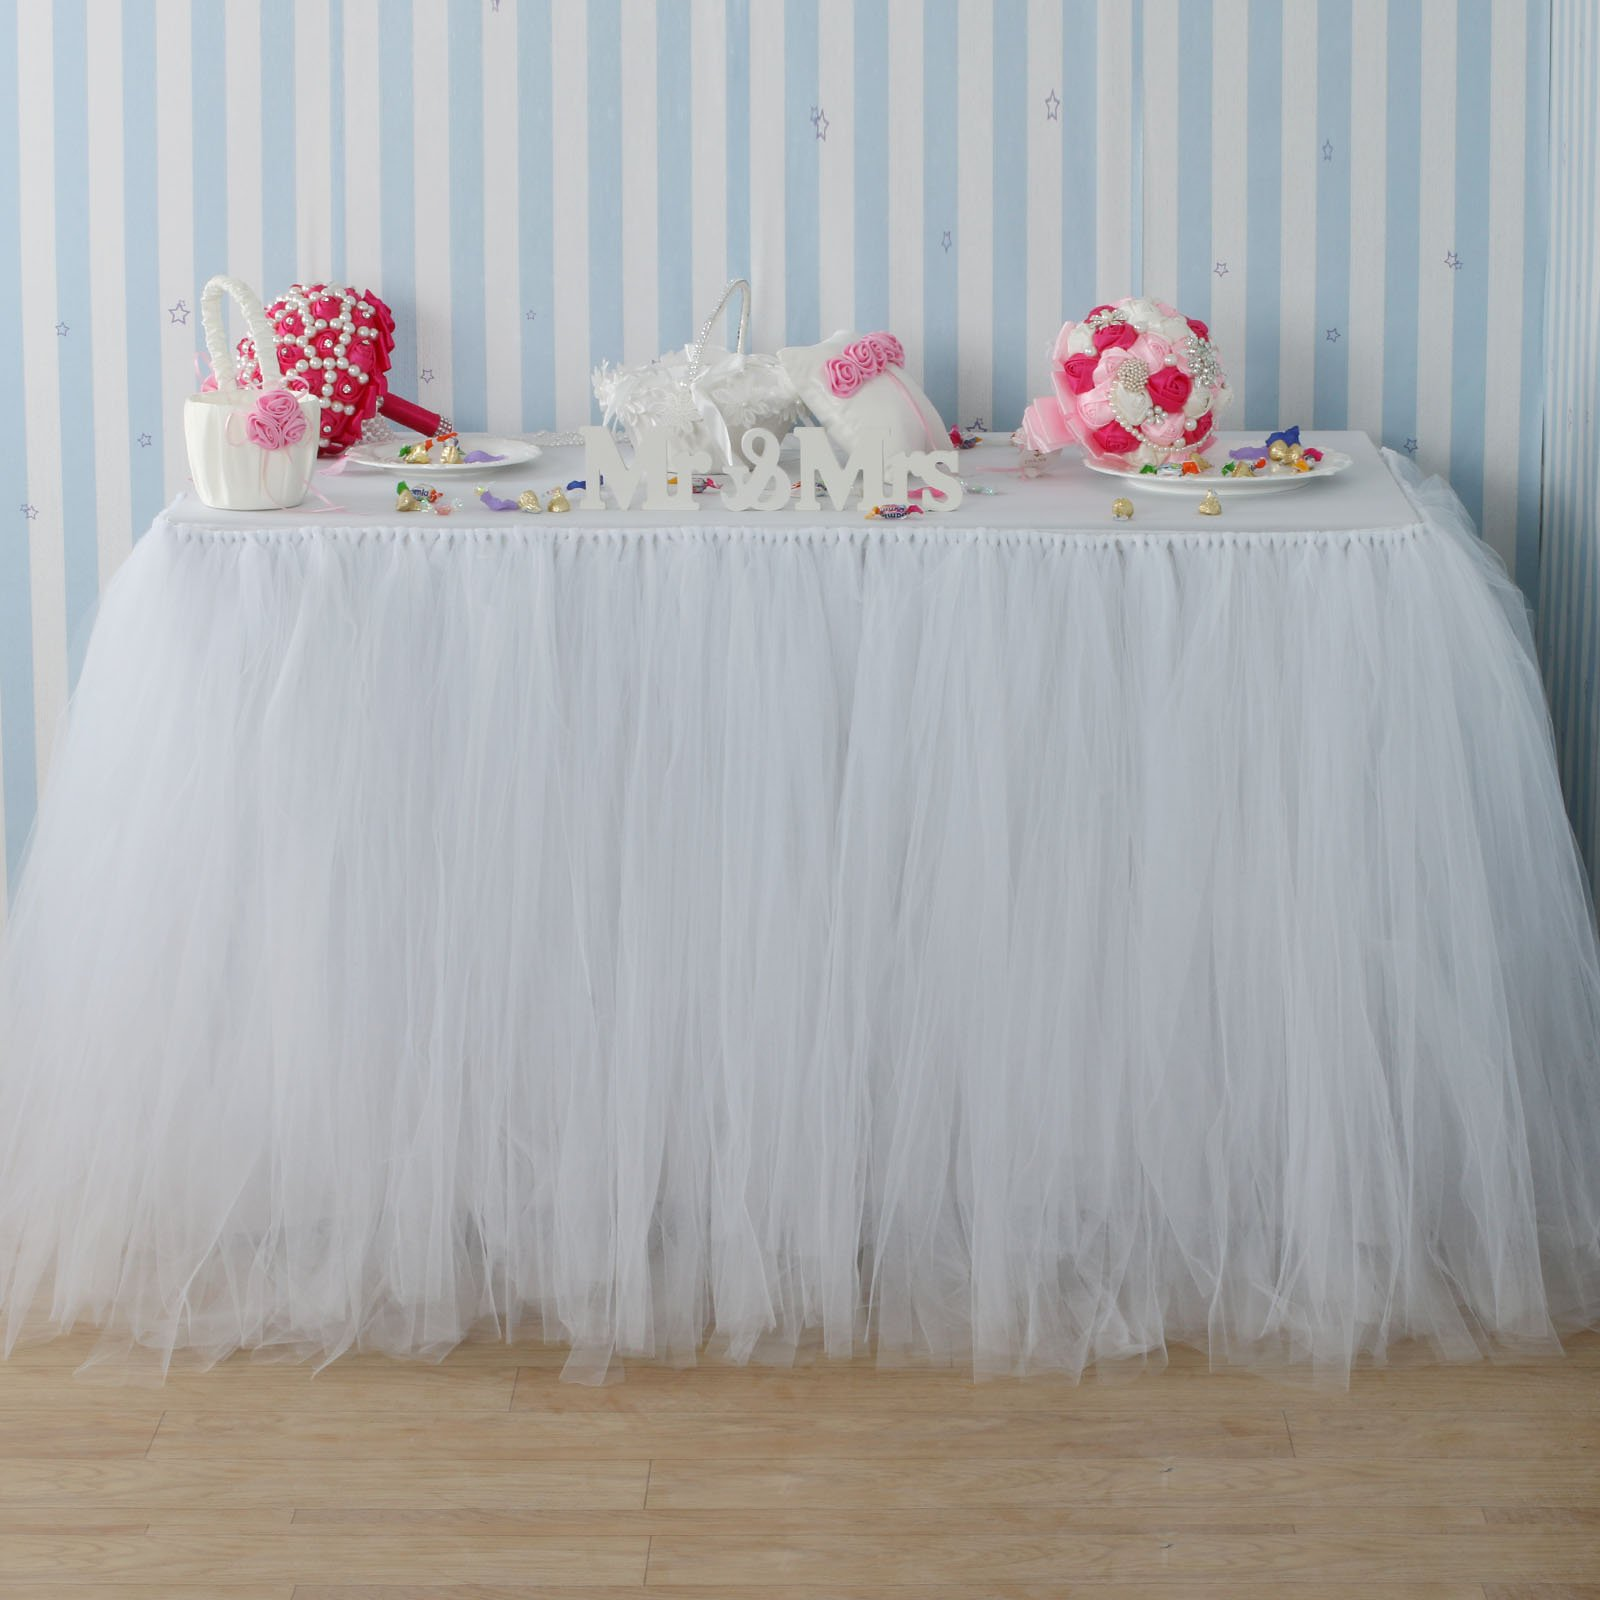 Fivejorya 3.3ft White Tulle Table Skirt Queen Wonderland Tablecloth Skirting Tutu Tablecloth Tableware for Christmas Wedding Baby Shower Birthday Party Cake Dessert Table Decor